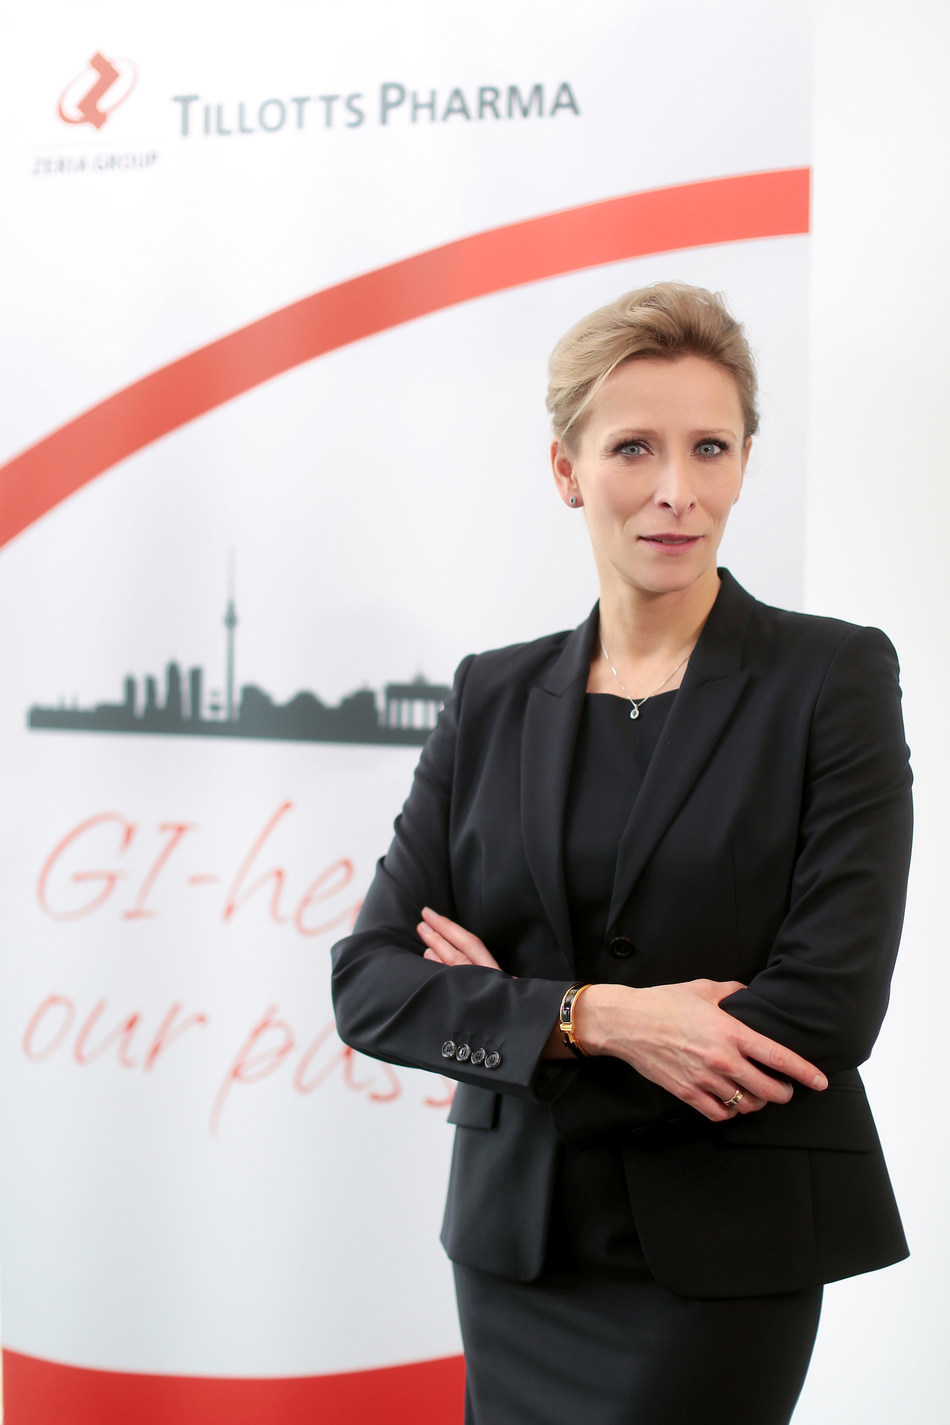 Dedicated to GI health: Magdalena Kritikos, General Manager of Tillotts Pharma GmbH in Berlin. Source: Tillotts Pharma GmbH (PRNewsFoto/Tillotts Pharma AG)